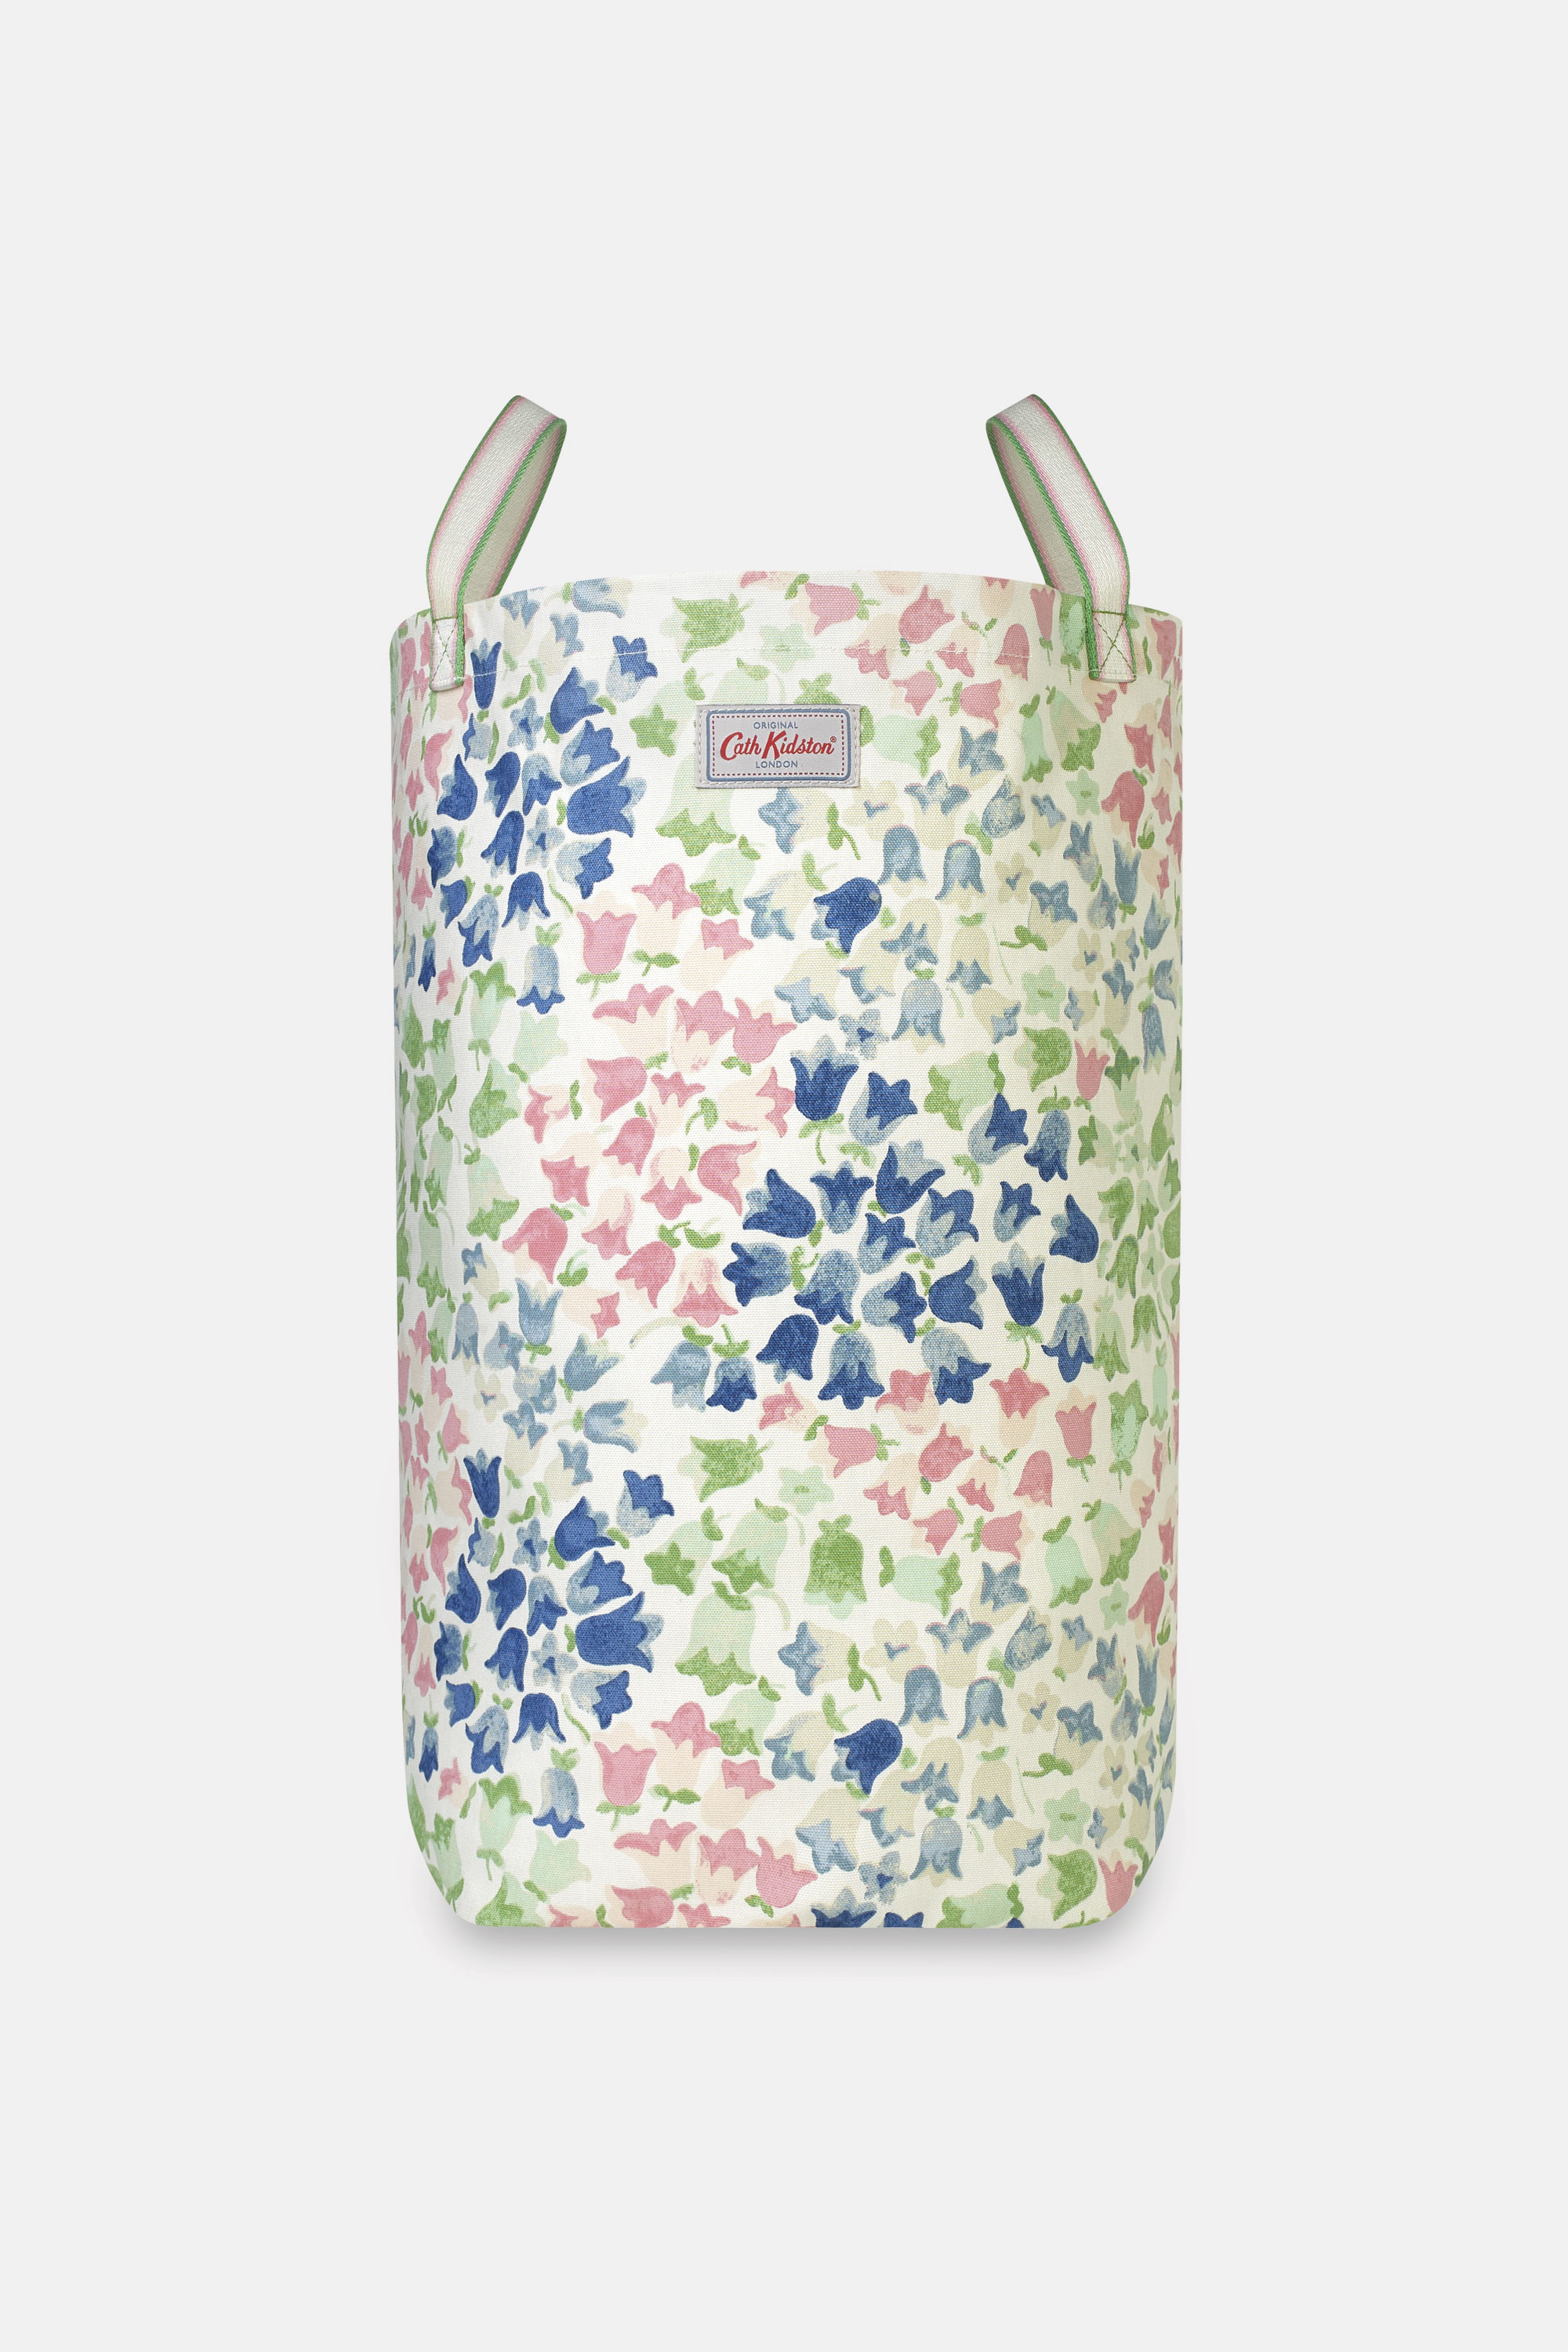 Cath Kidston Painted Bluebell Laundry Bag in Warm Cream